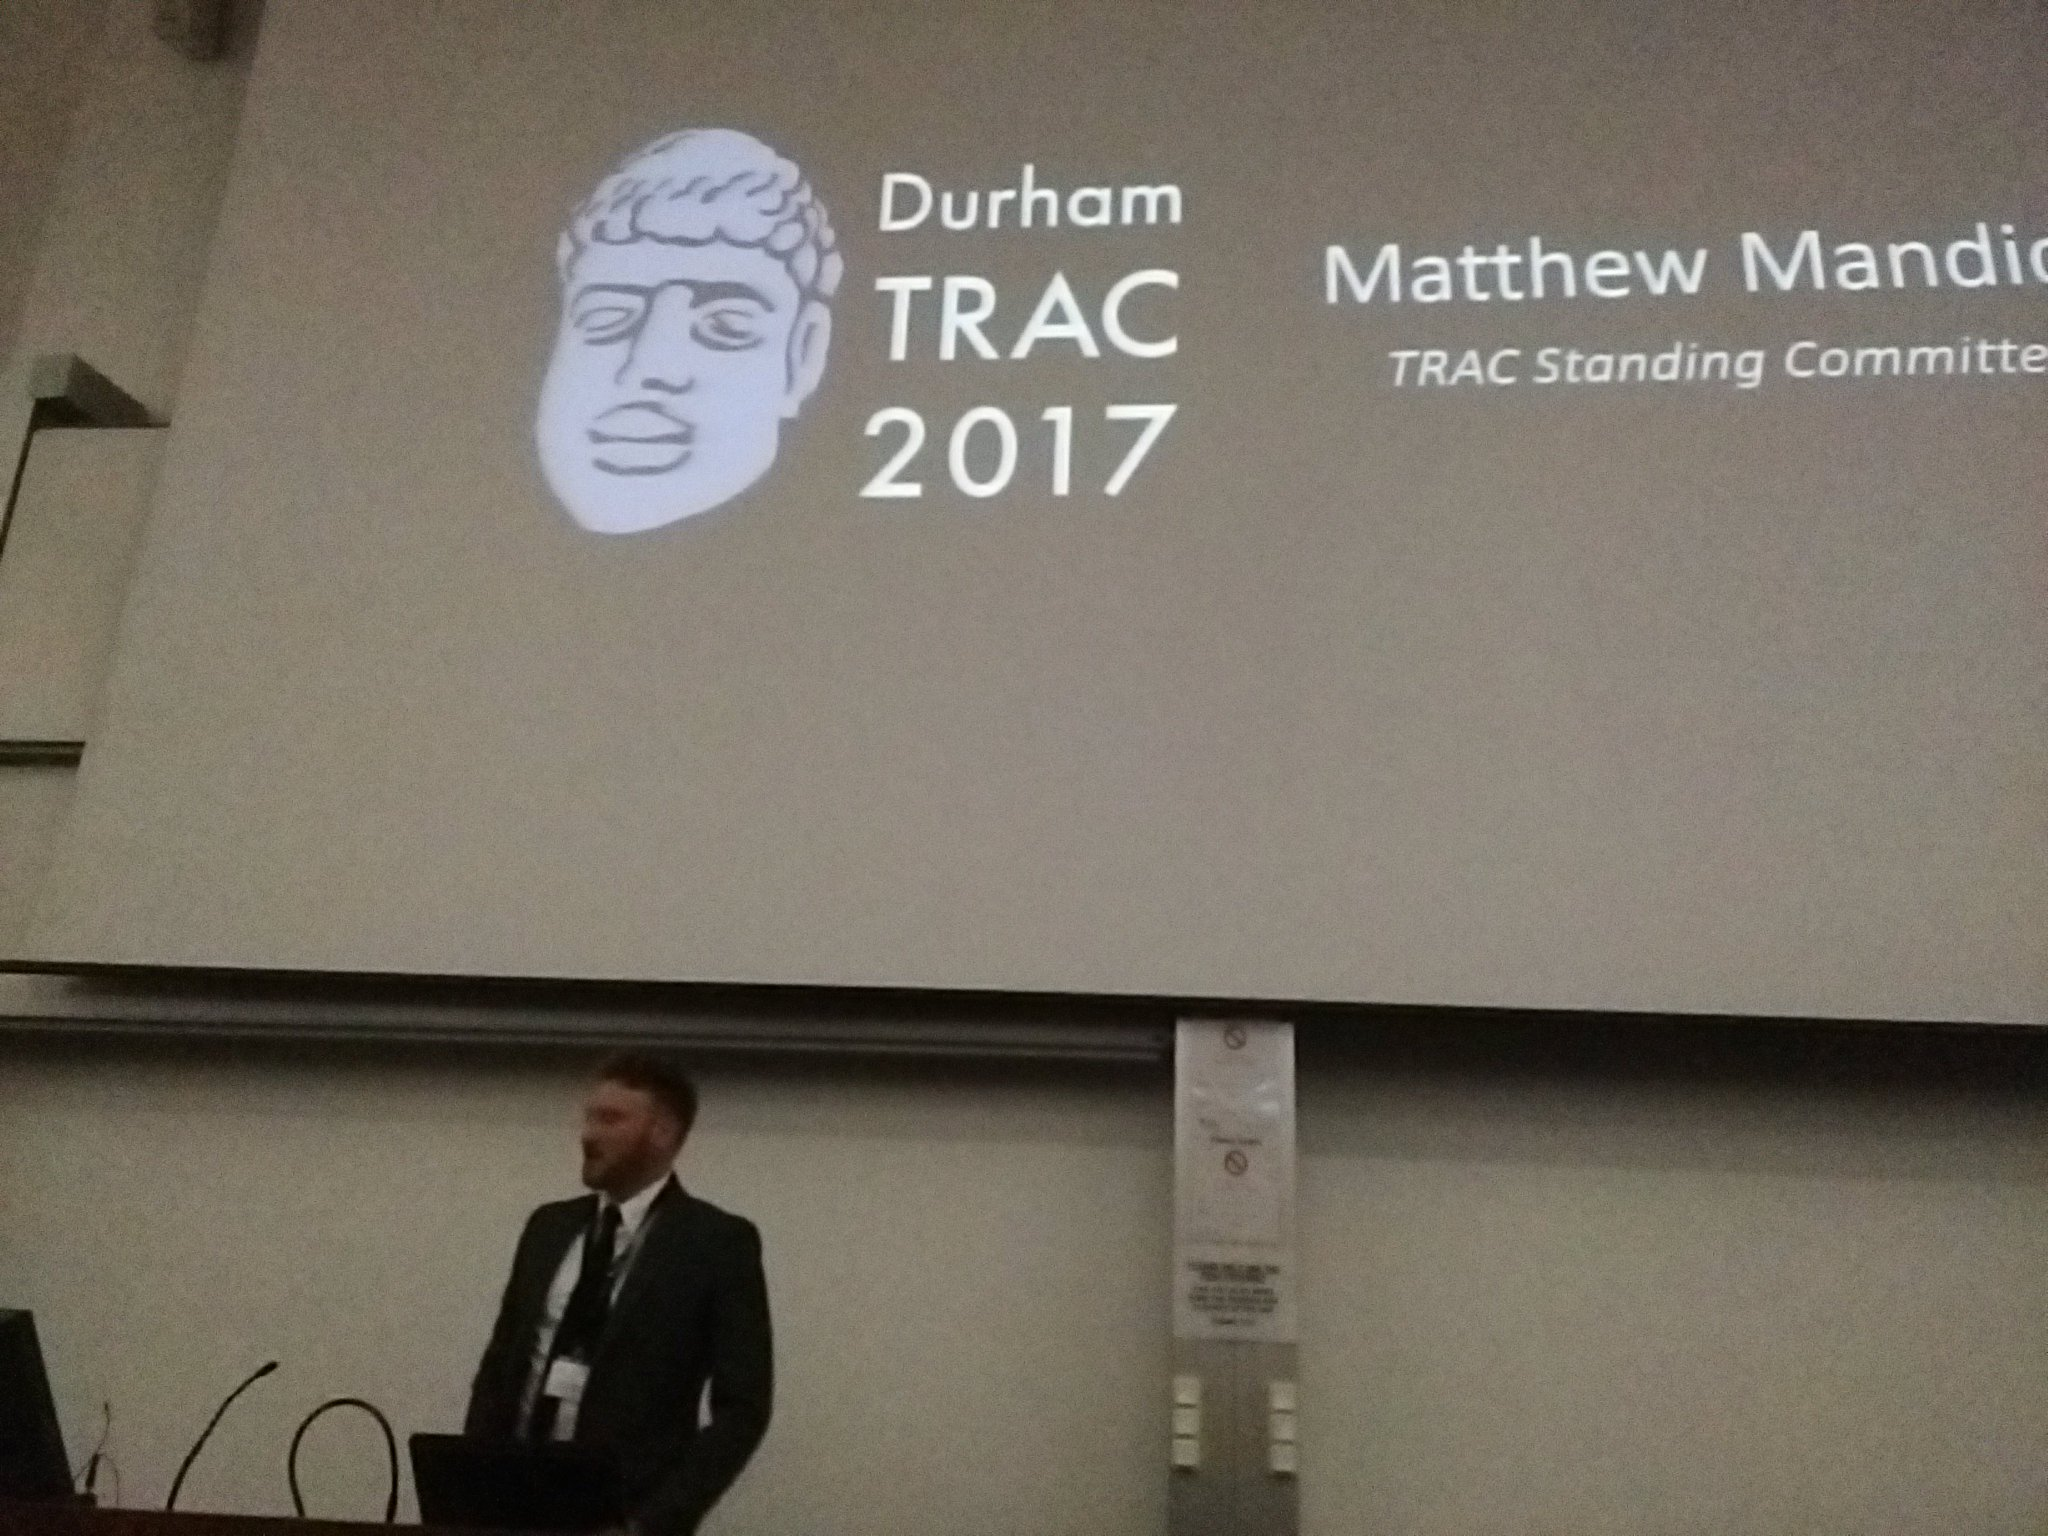 Next up, Chair of TRAC Standing Committee Matthew Mandich (Leicester) updates #TRACDurham delegates on developments incl new publications https://t.co/w0iD9NbUgD